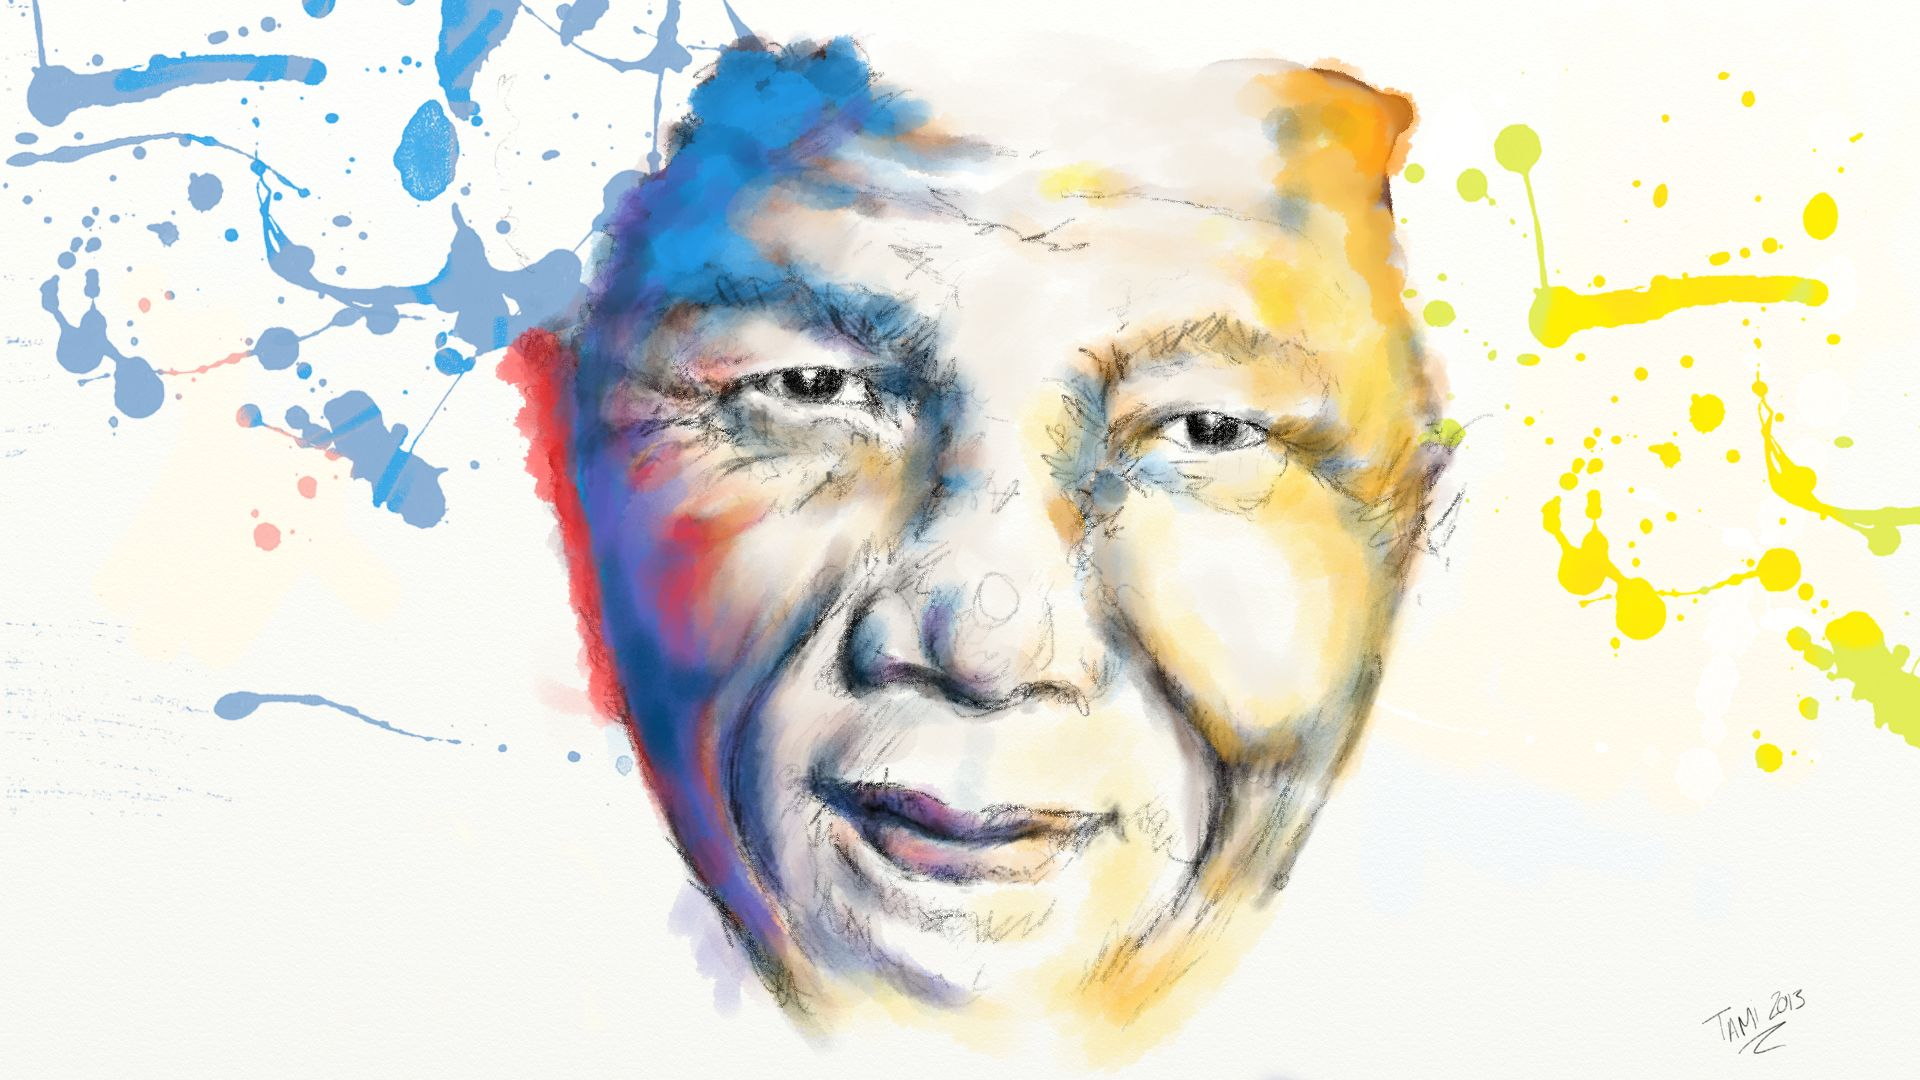 Madiba, an icon of forgiveness more on my blog http://tamixes.onsugar.com/Madiba-icon-forgiveness-32894591